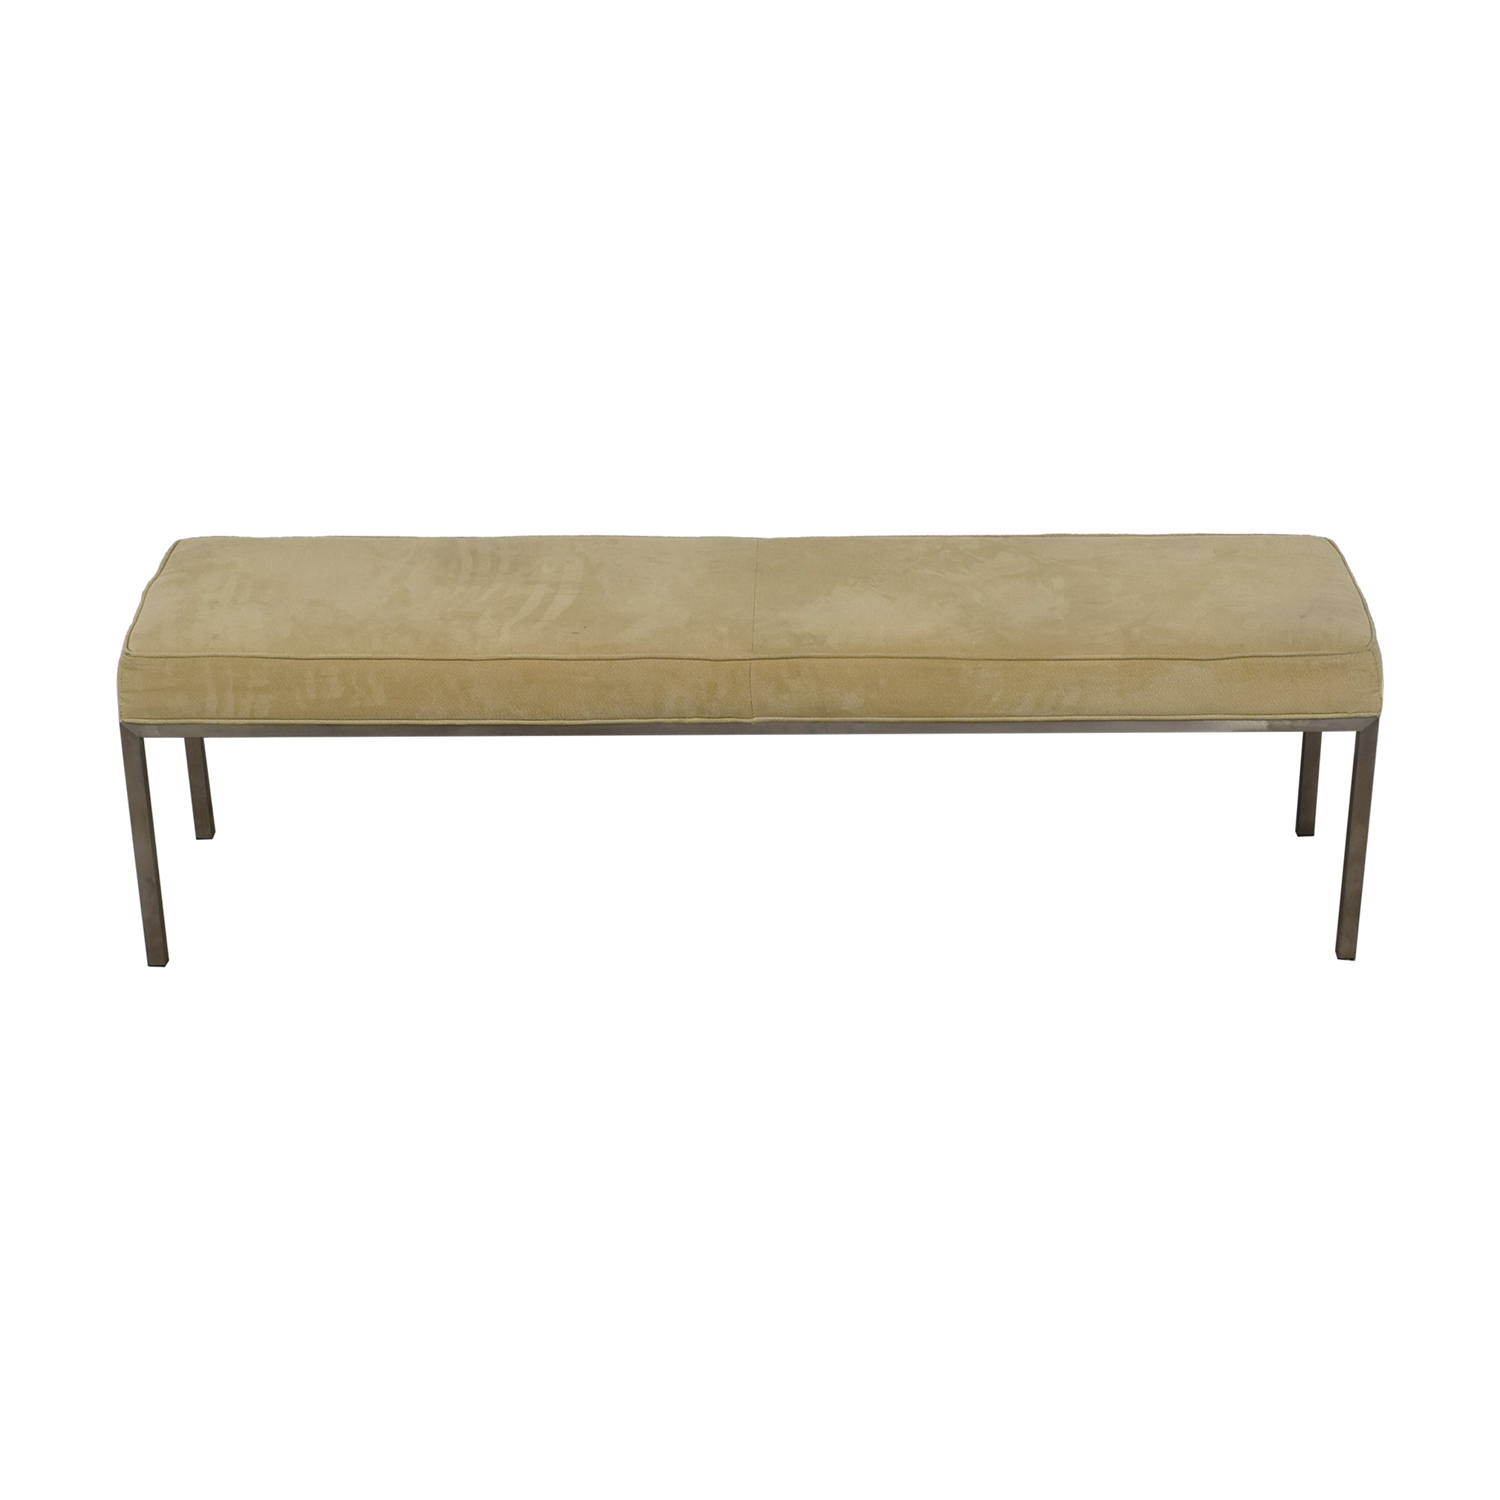 Room & Board Room & Board Portica Beige Custom Bench for sale